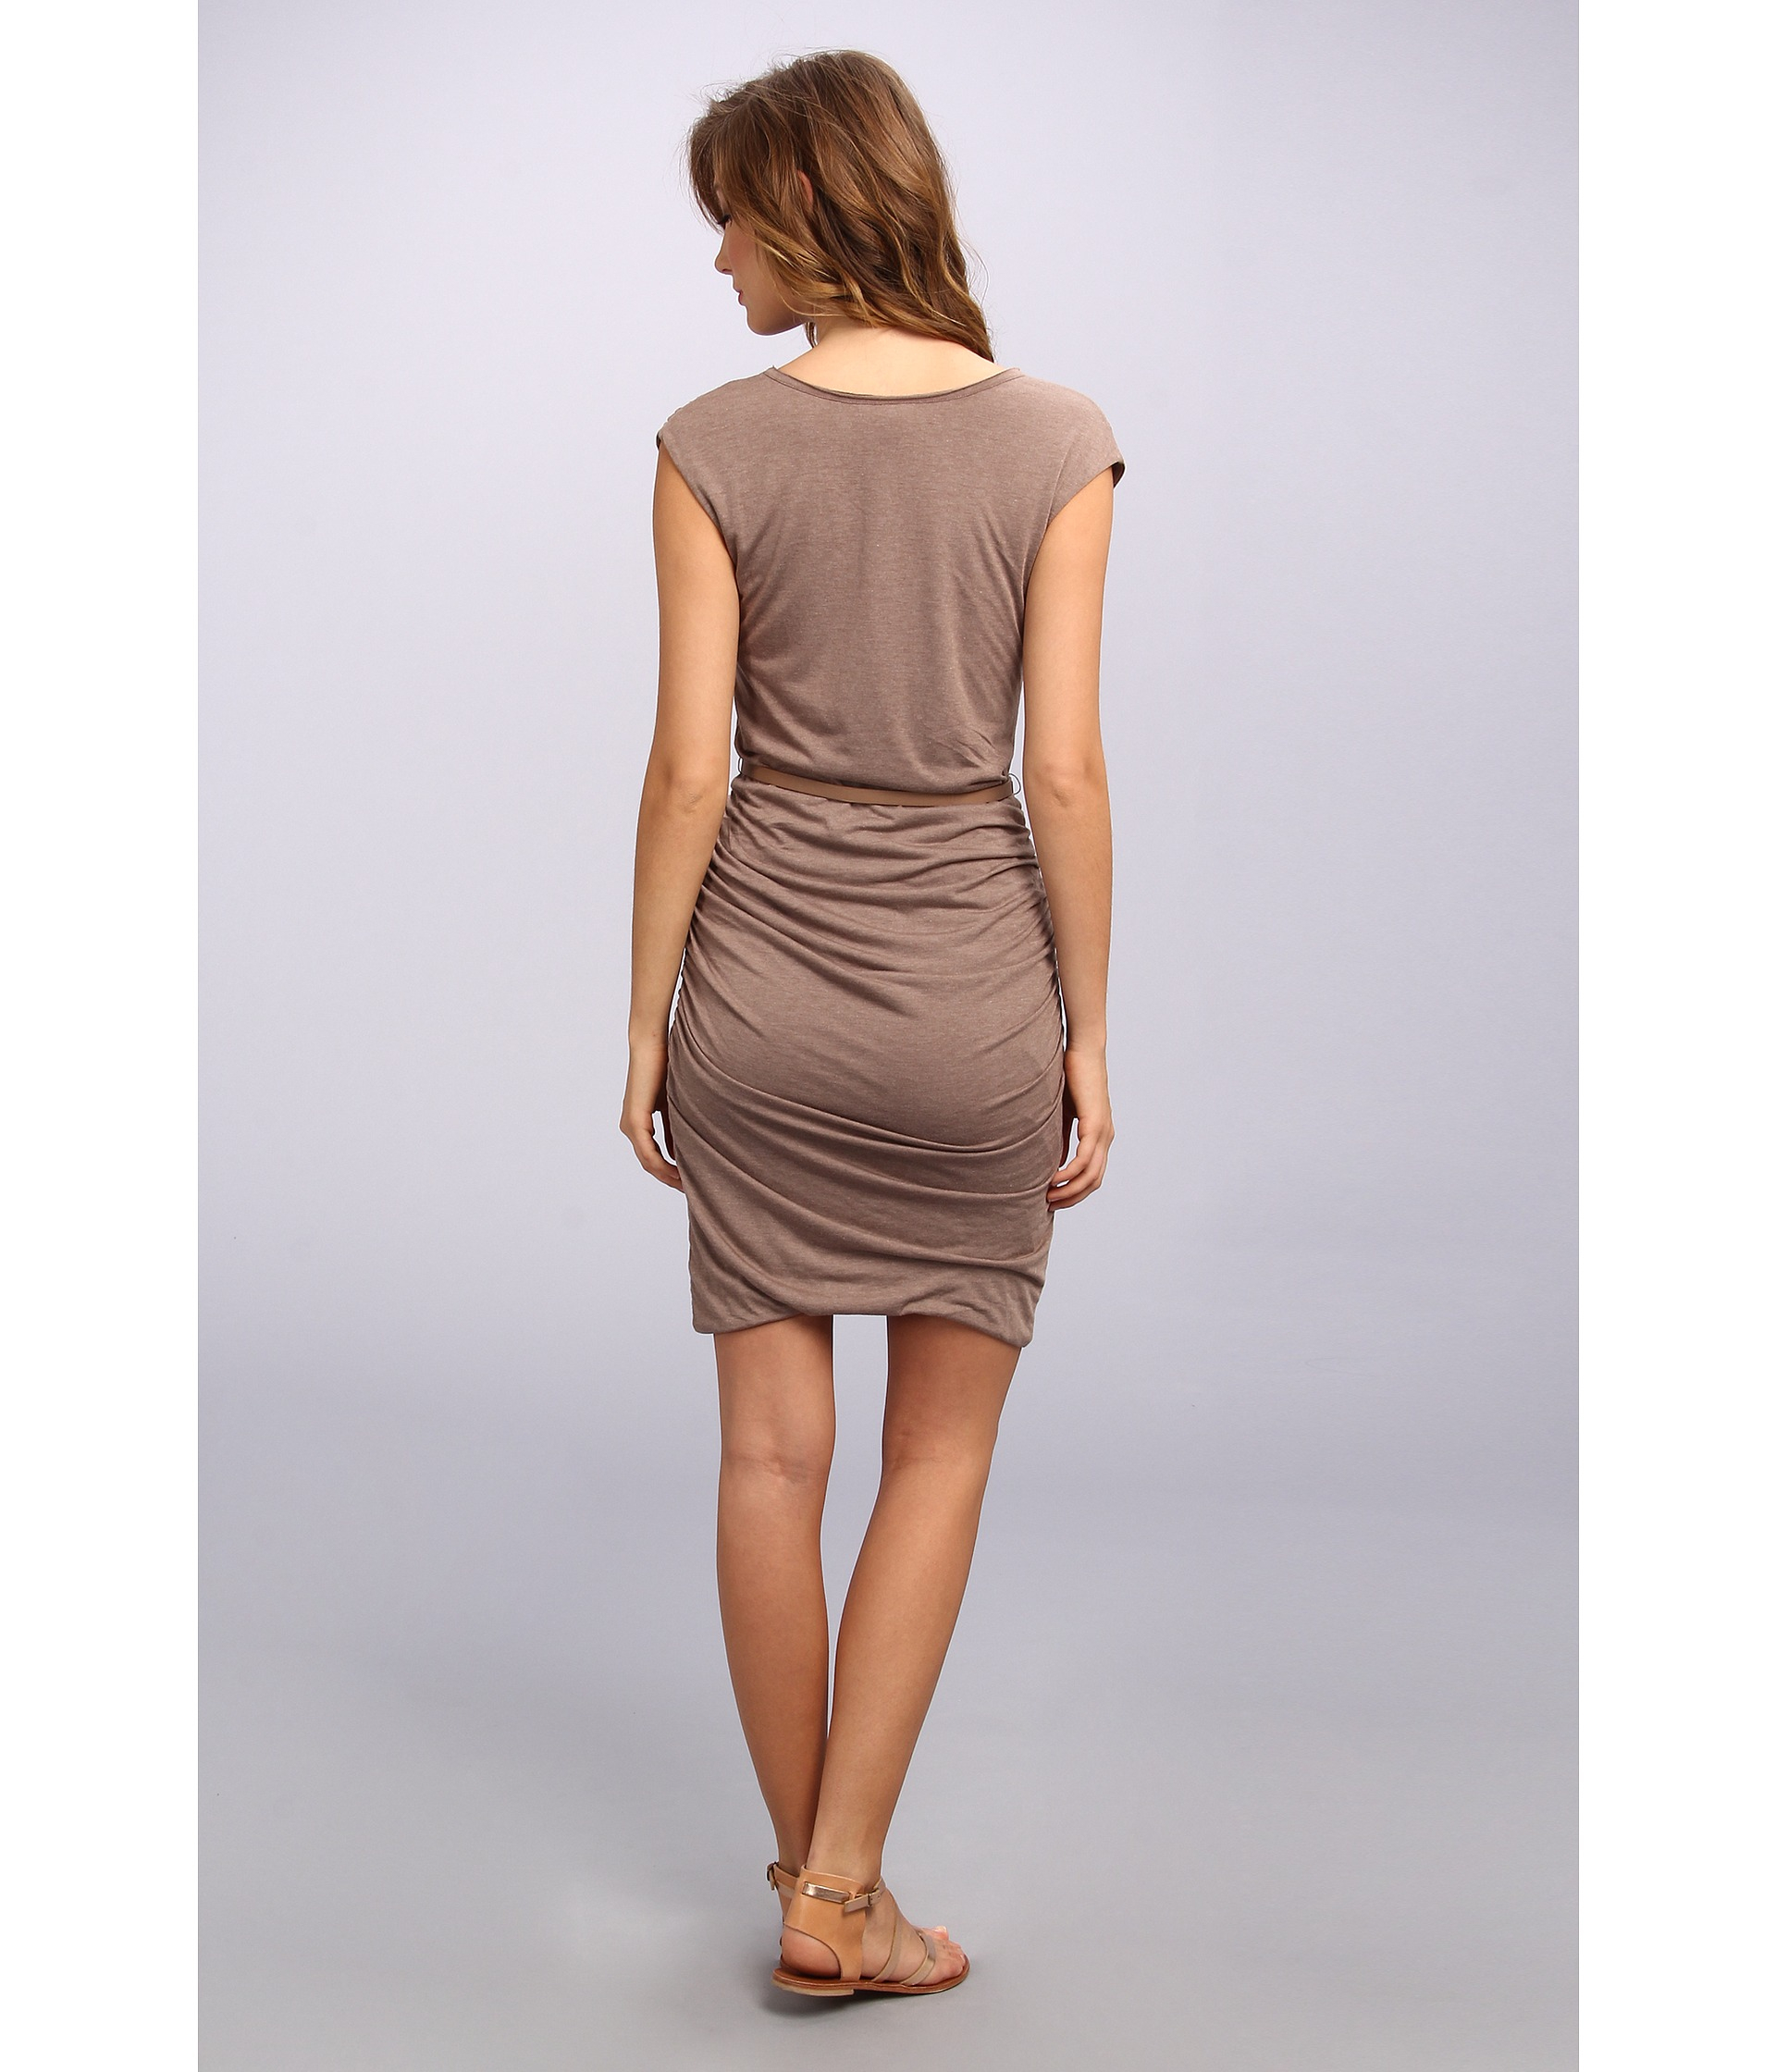 2eae11cc07 Lyst - Kut From The Kloth Avy Knit Dress in Brown